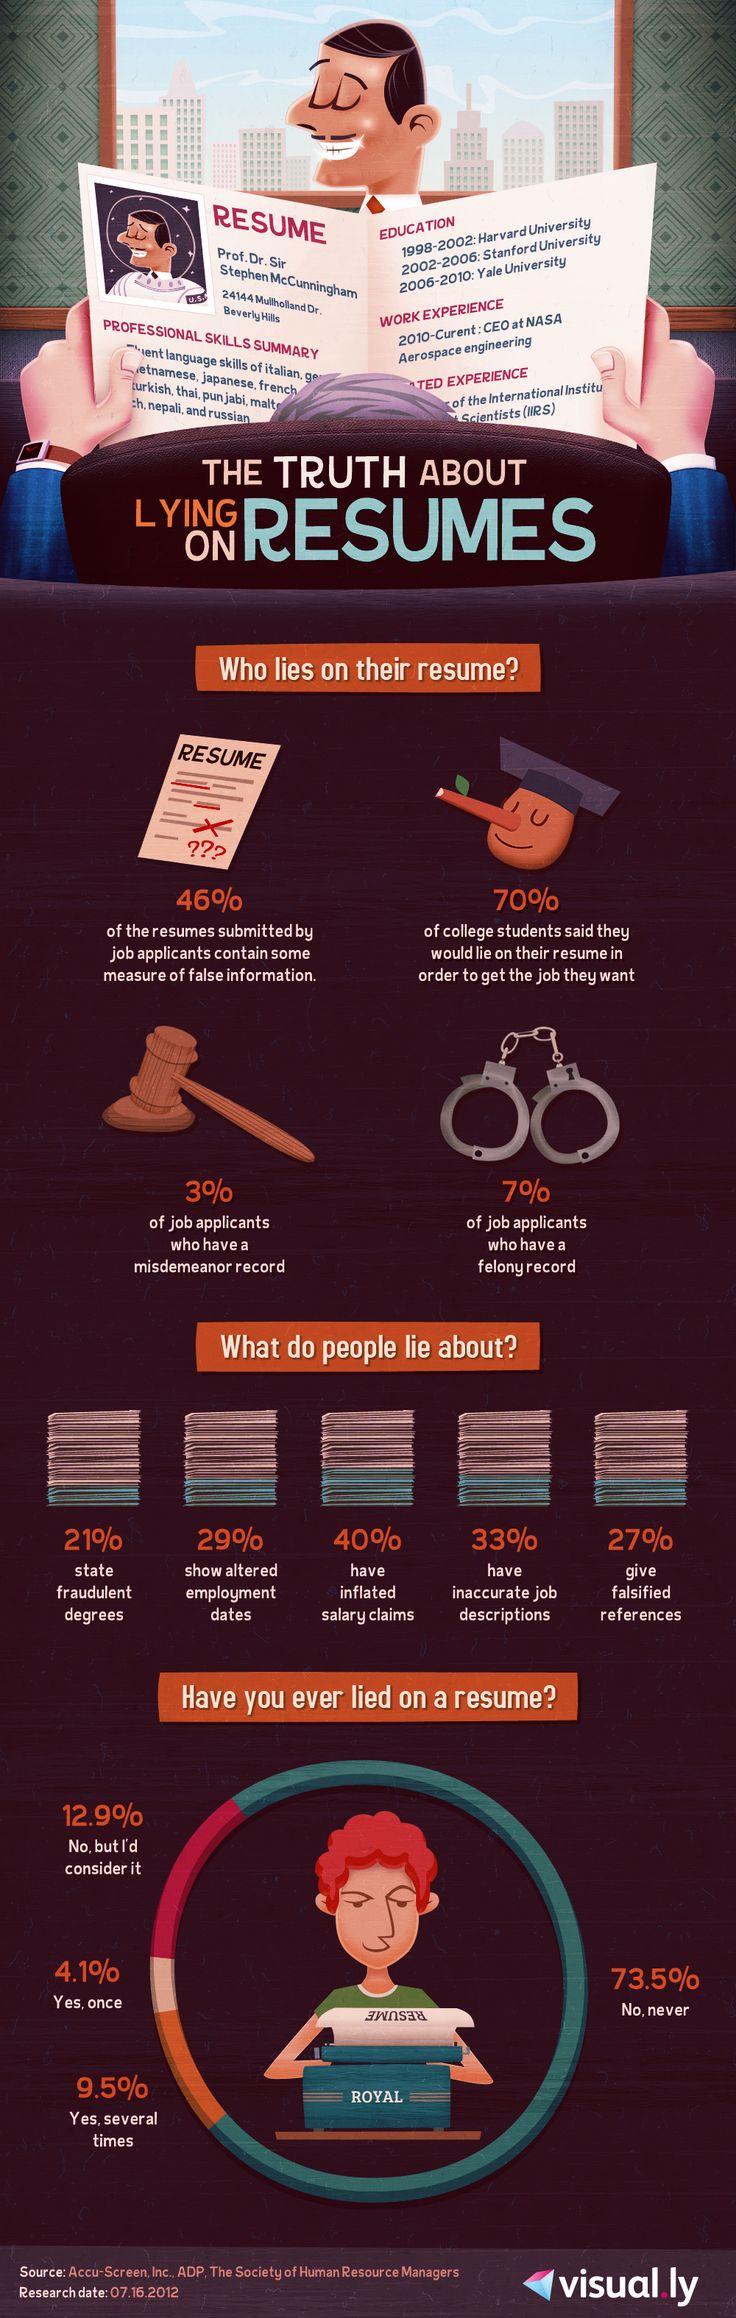 Who Lies on Their Resumes? [#infographic]